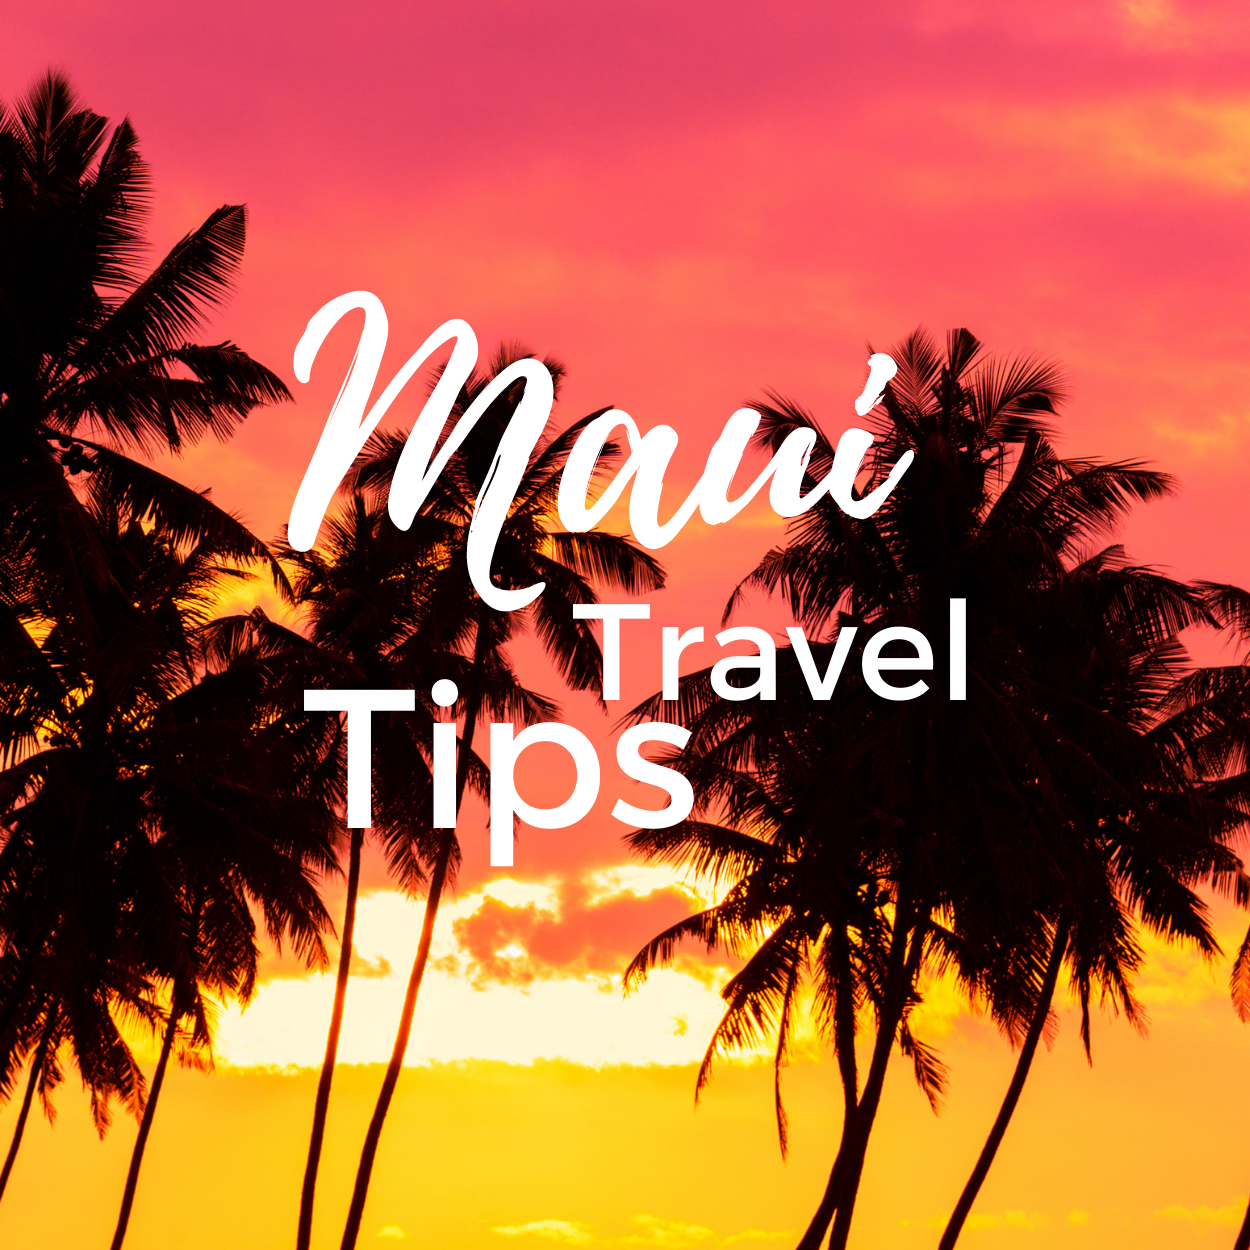 Maui Travel Tips: What to Know Before Traveling to Maui?